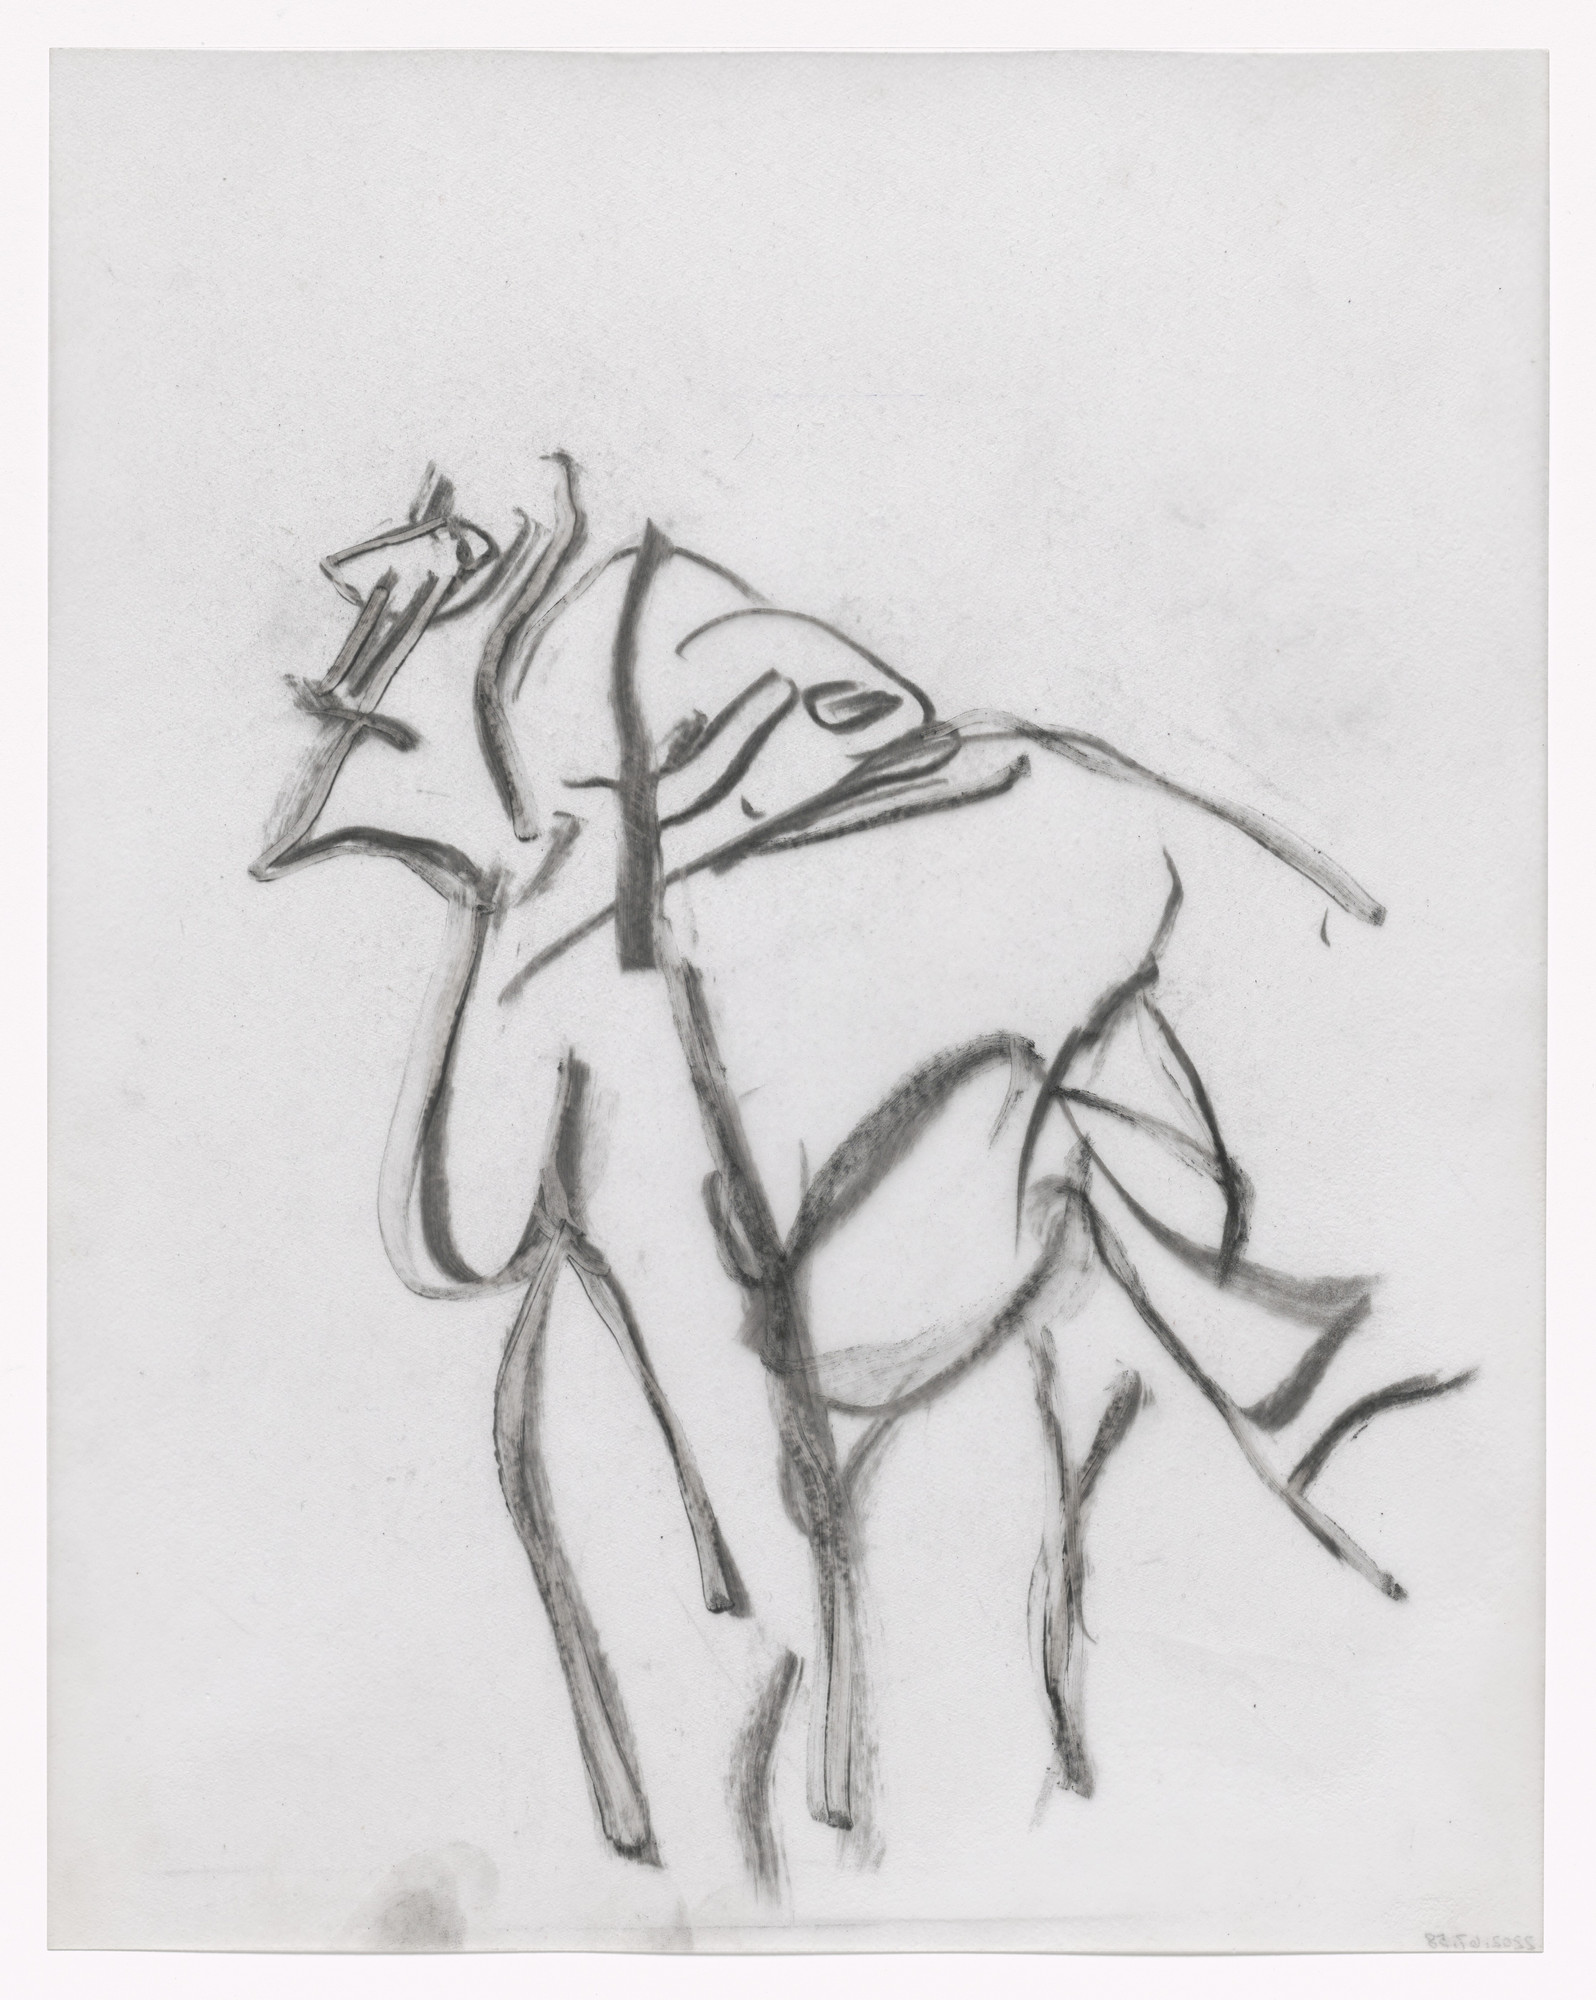 Willem de Kooning. Preparatory drawing for In Memory of My Feelings. 1967